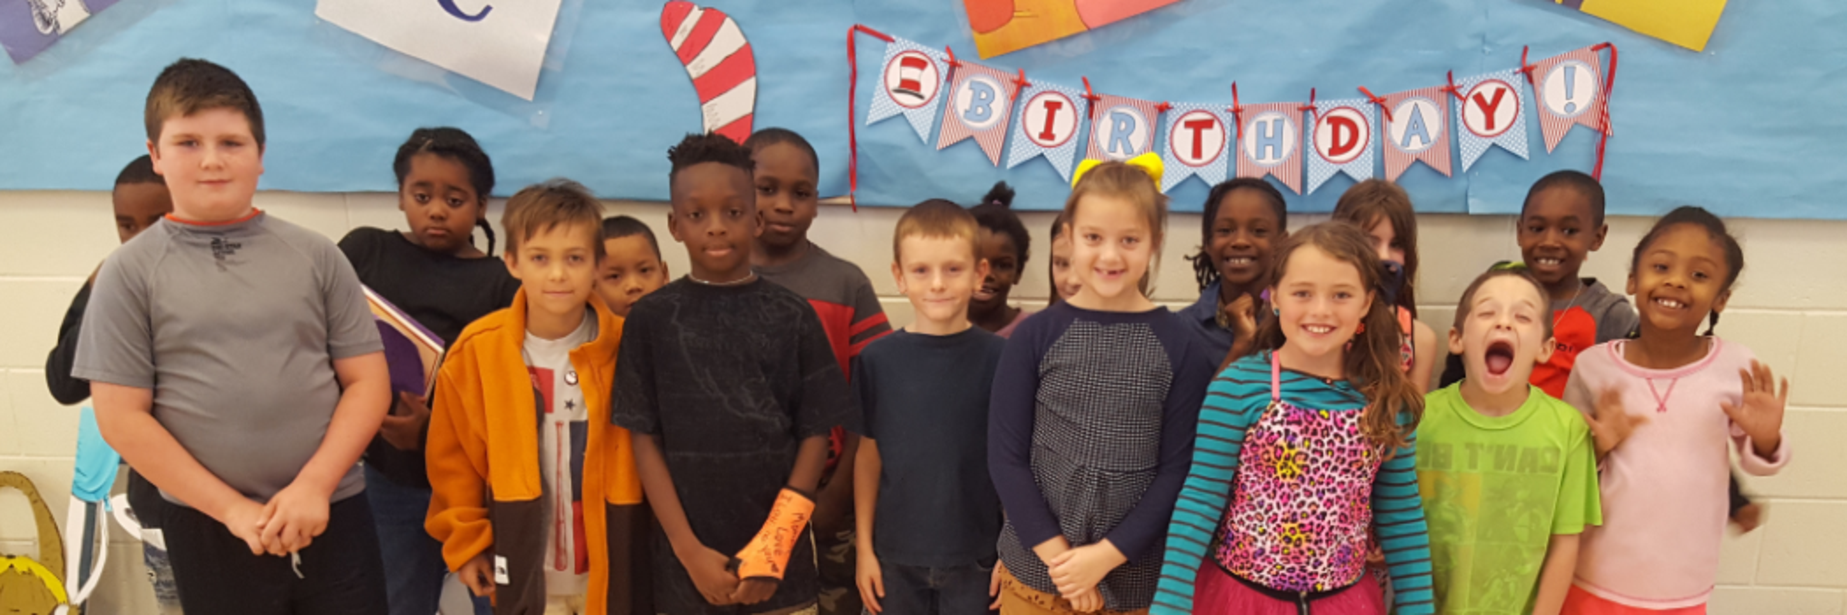 Class with Dr. Seuss bulletin board